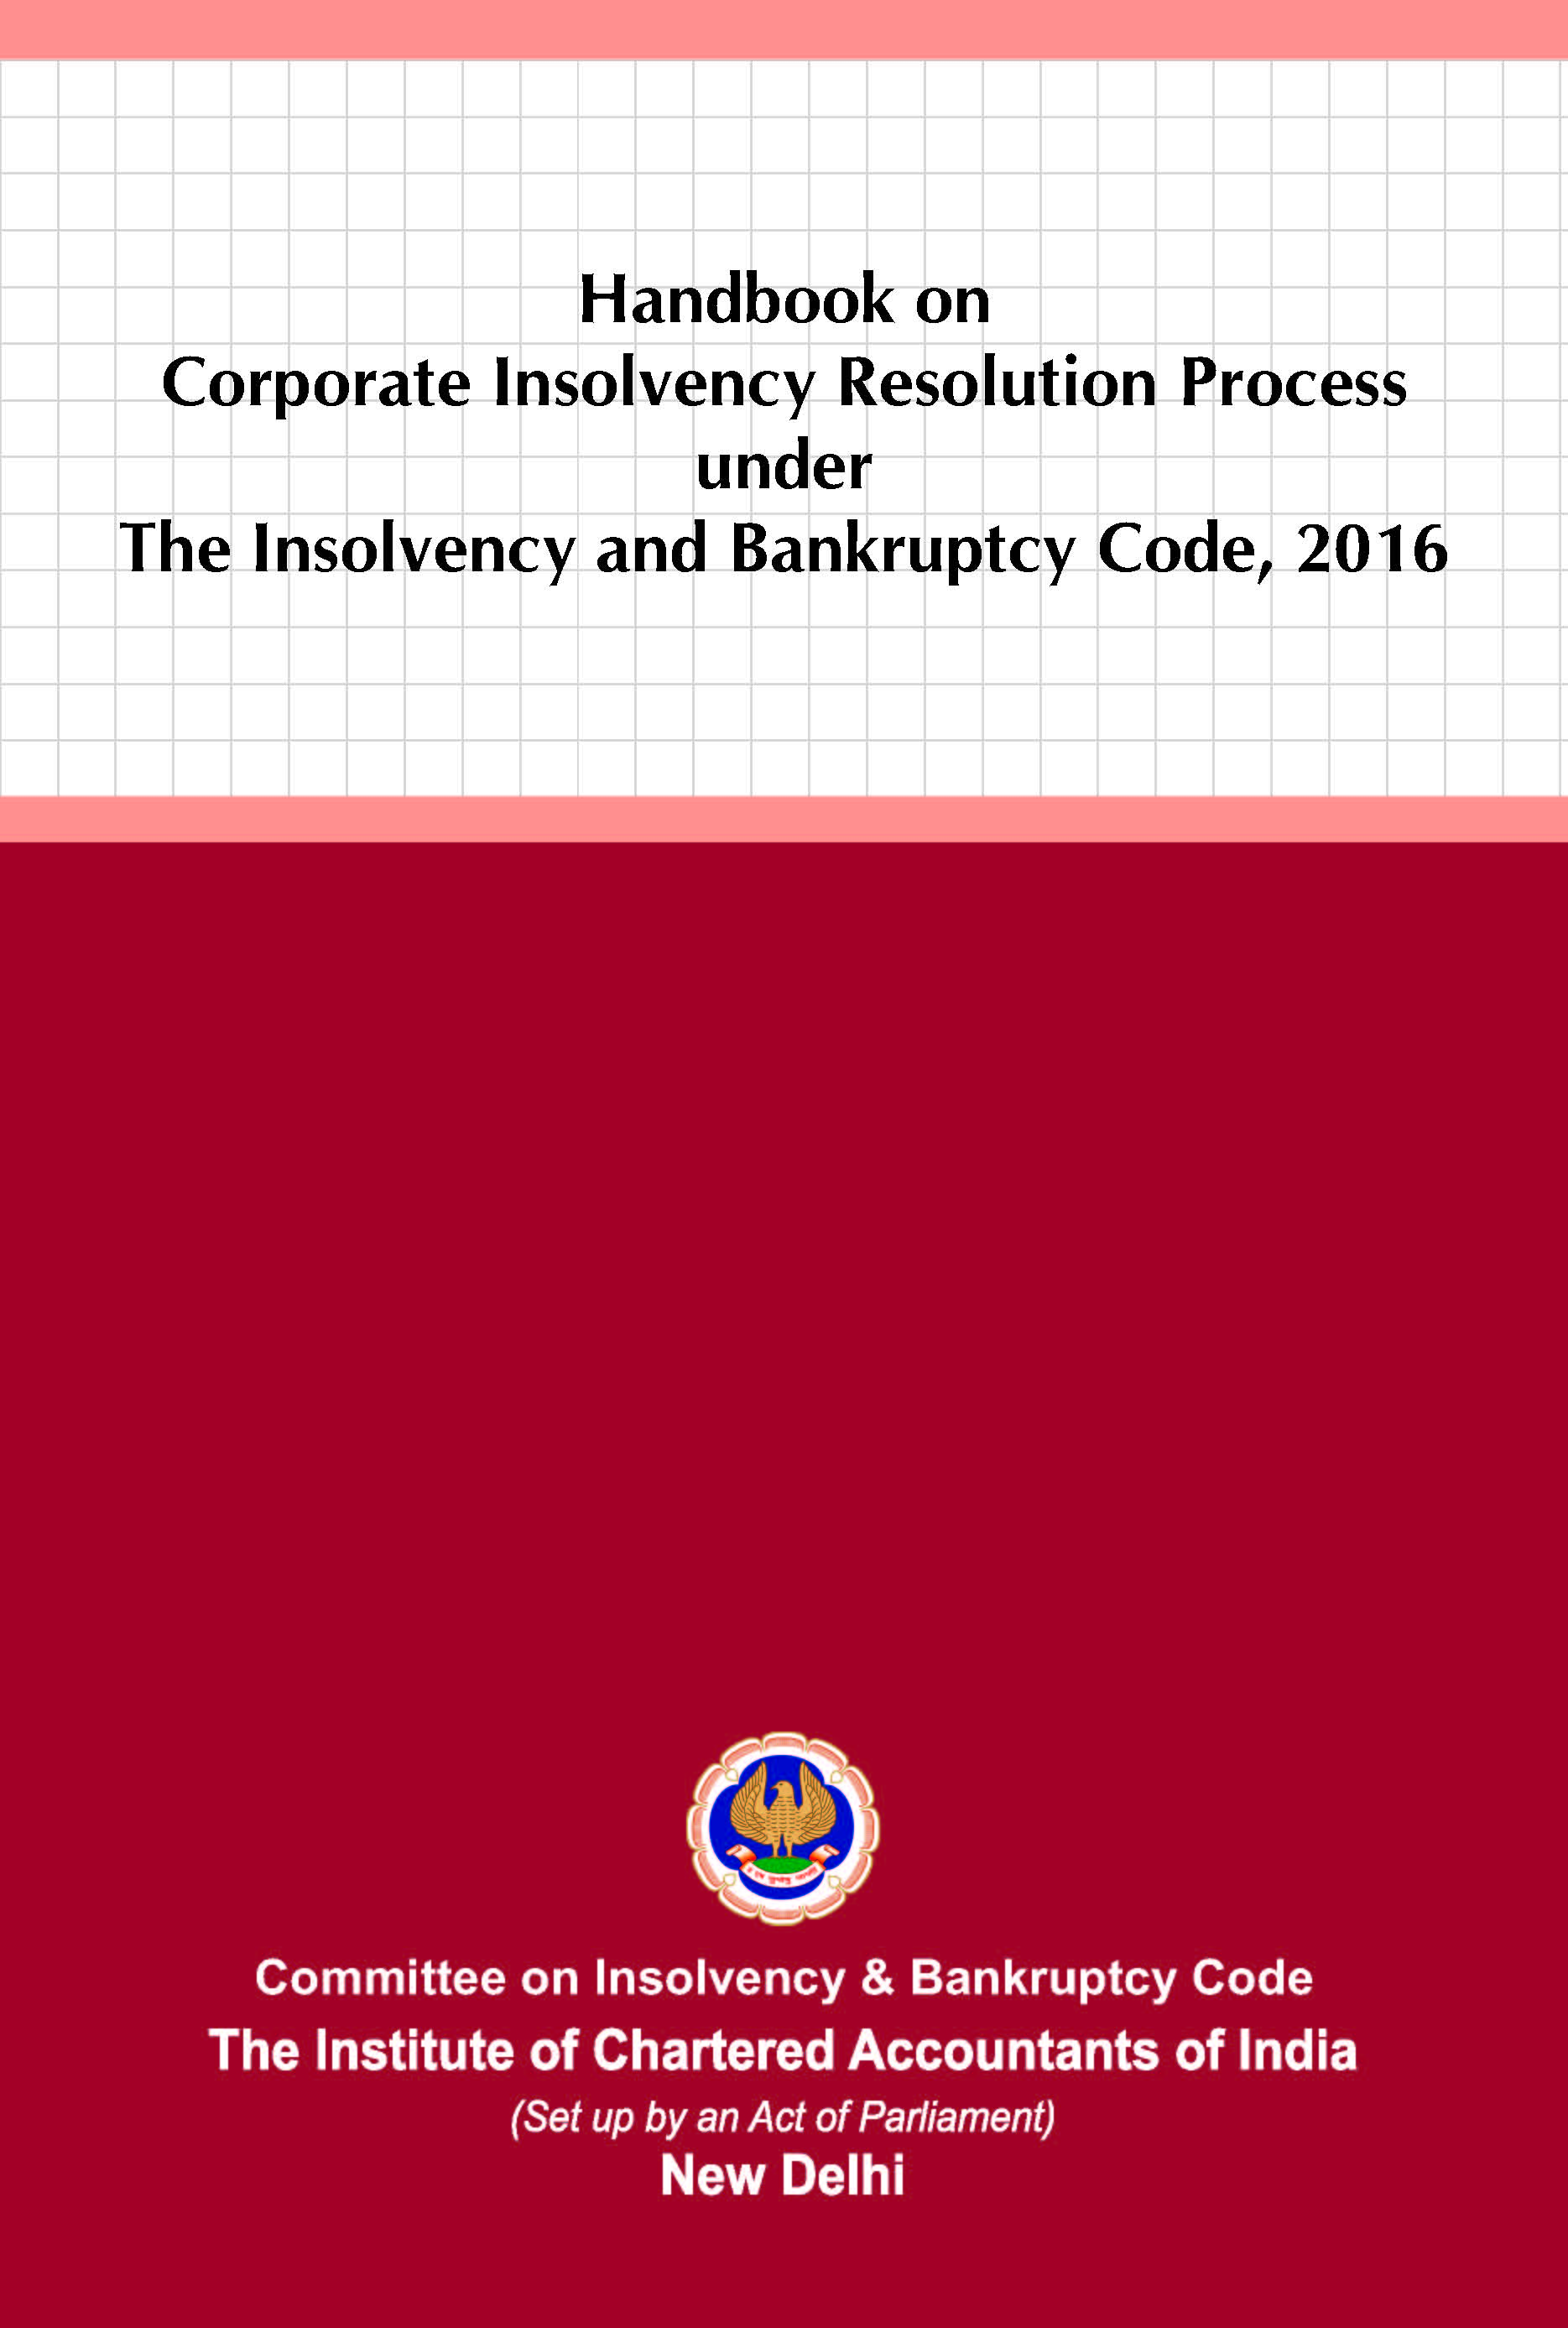 Handbook on Corporate Insolvency Resolution Process under The Insolvency and Bankruptcy Code, 2016 (June, 2021)